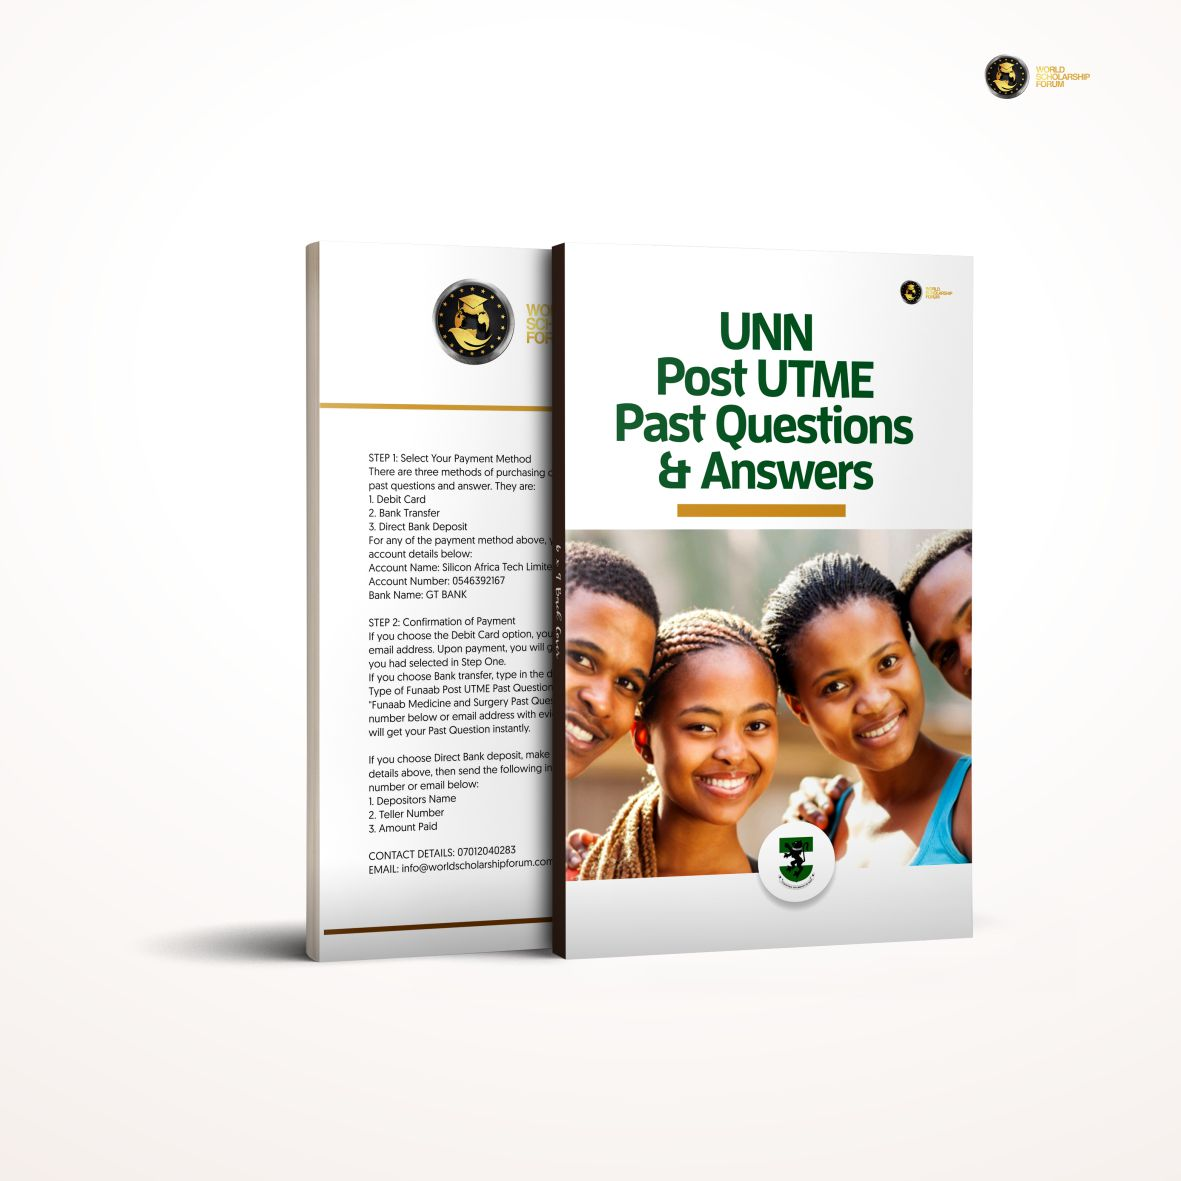 unn-post-utme-past-question-answers